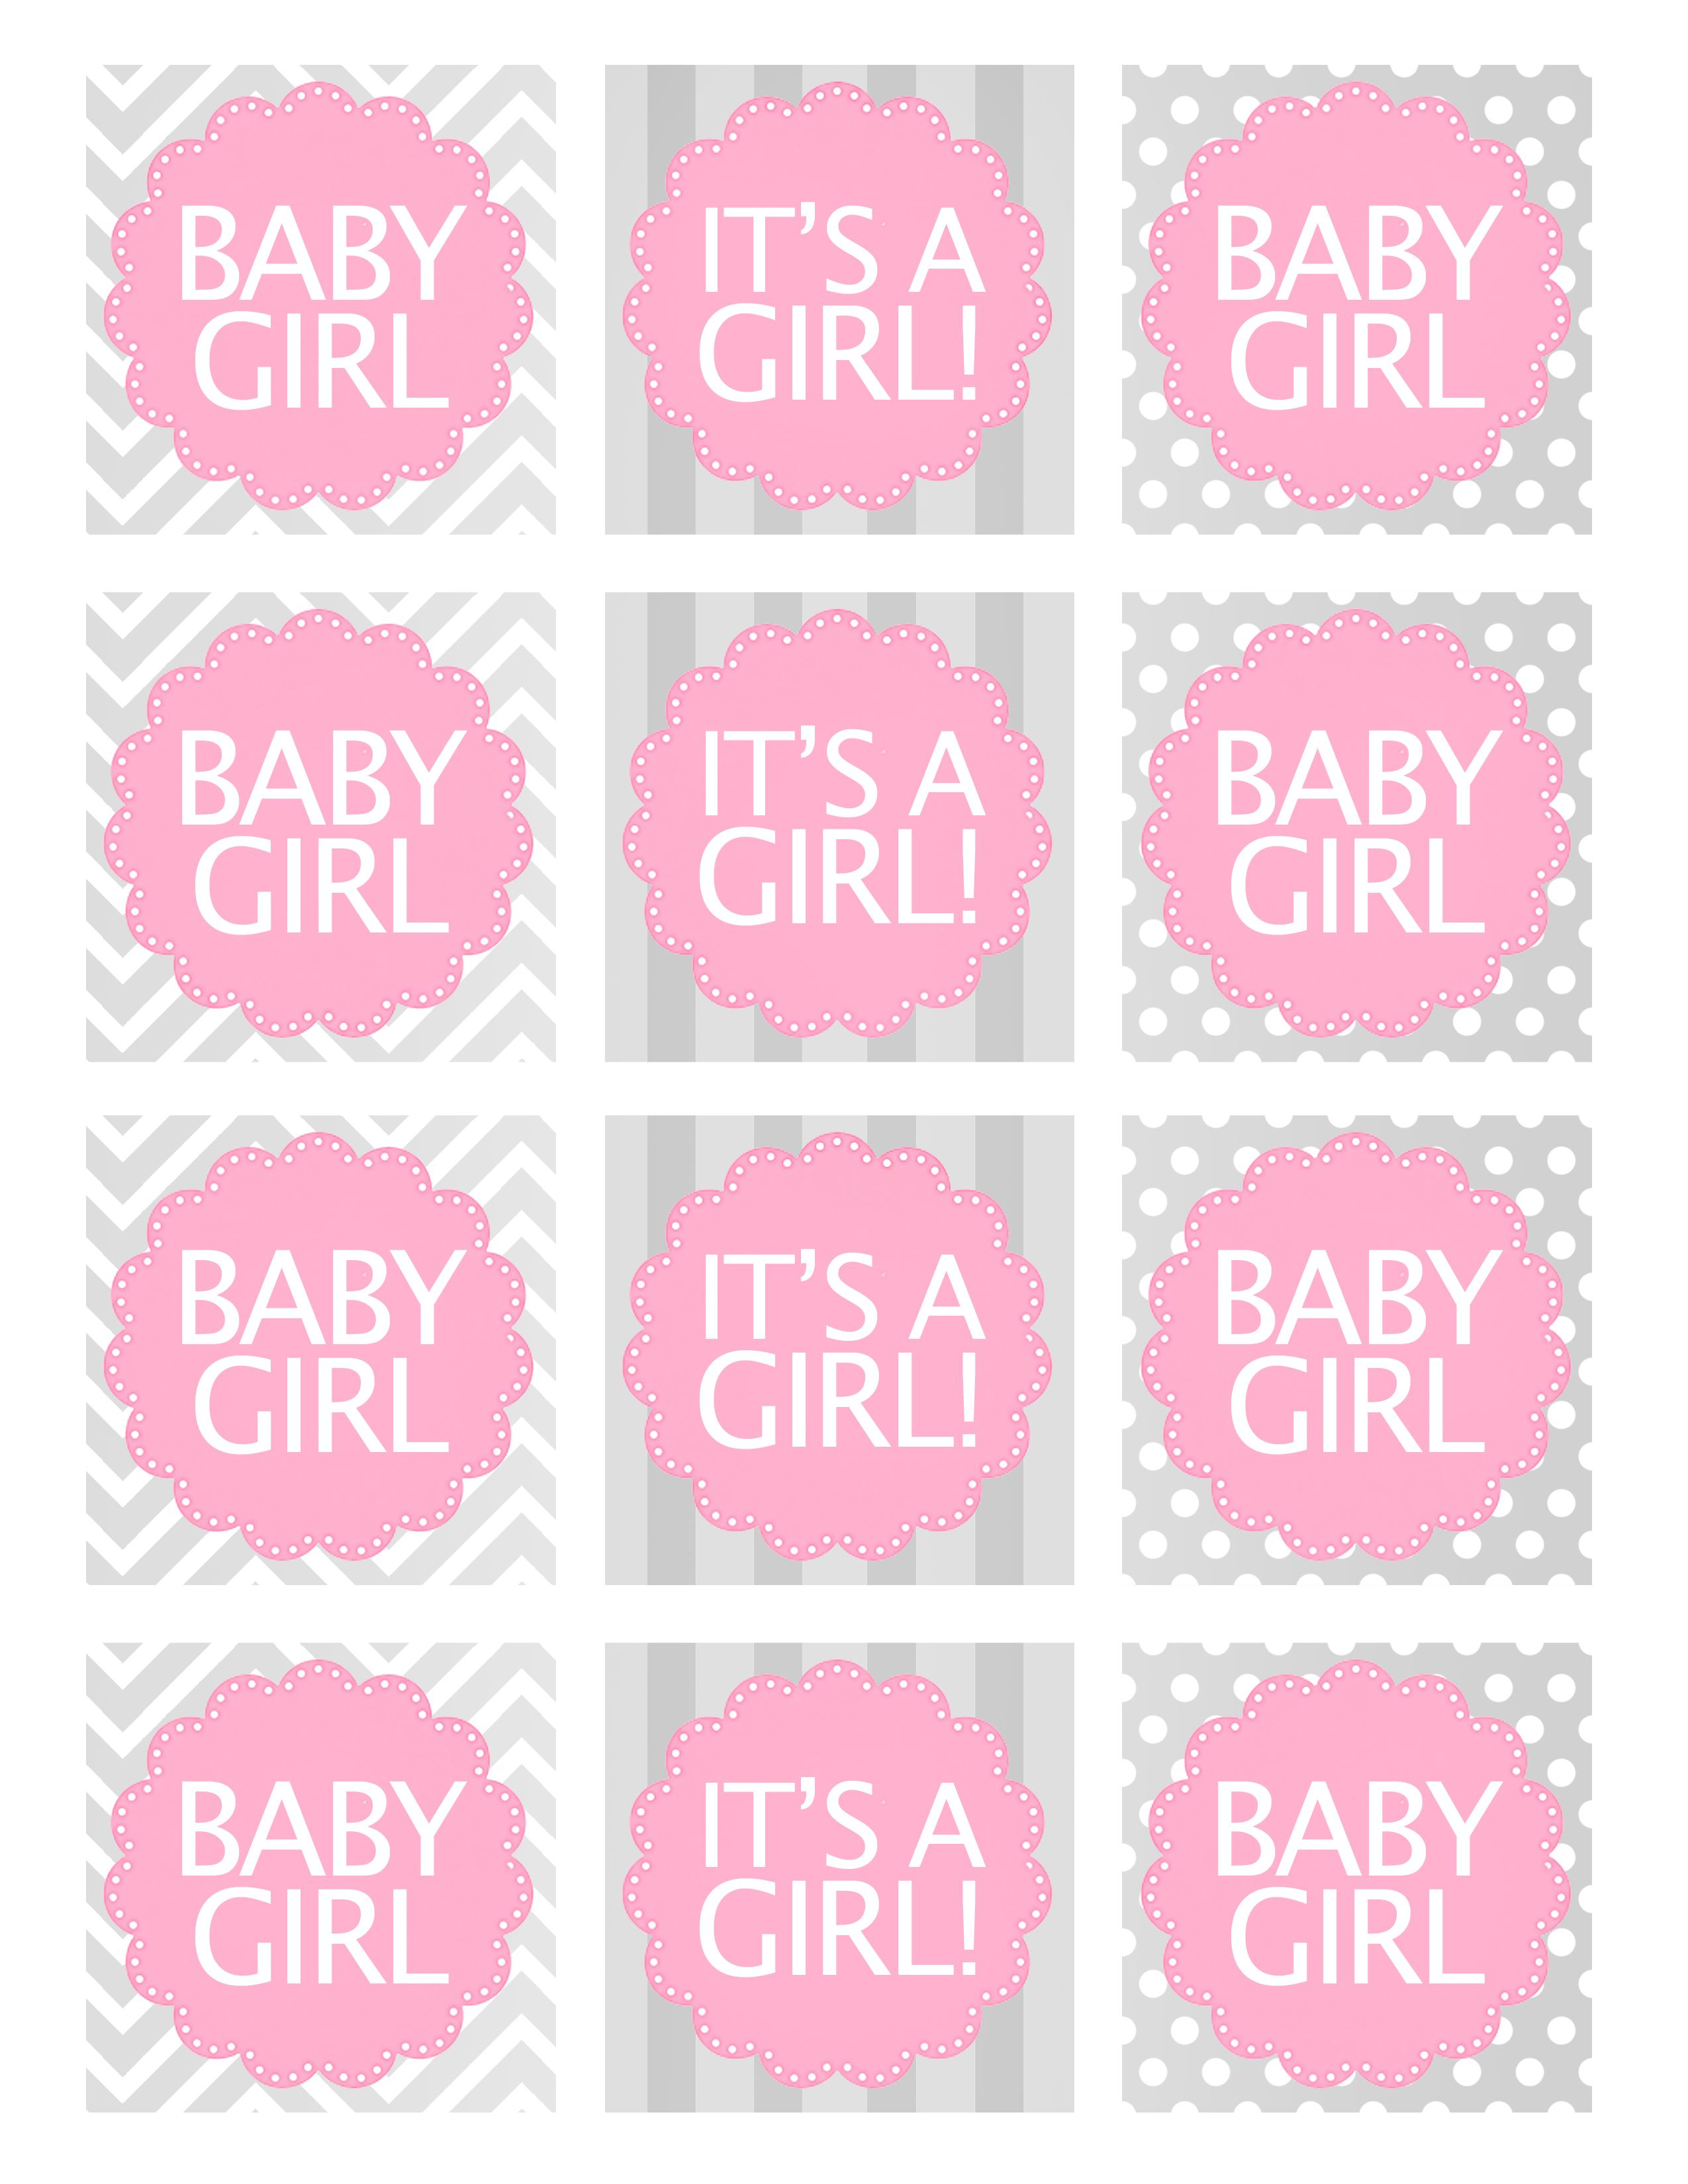 Baby Girl Shower Free Printables   Baby Shower Ideas   Pinterest - Free Printable Baby Shower Favor Tags